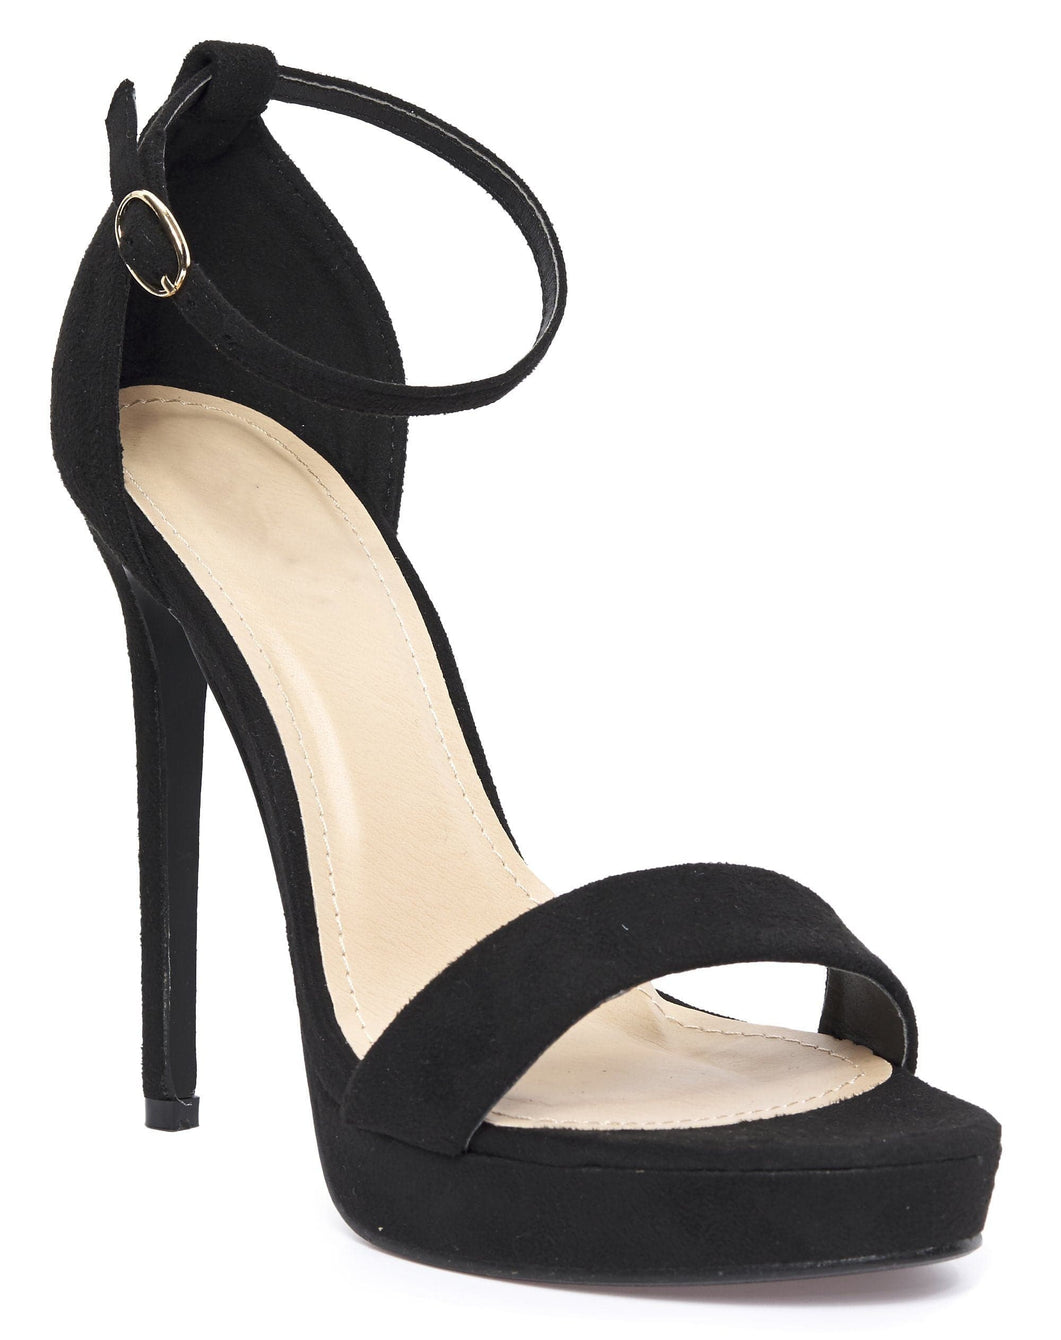 Ella Barely There Platform Sandal in Black Suede